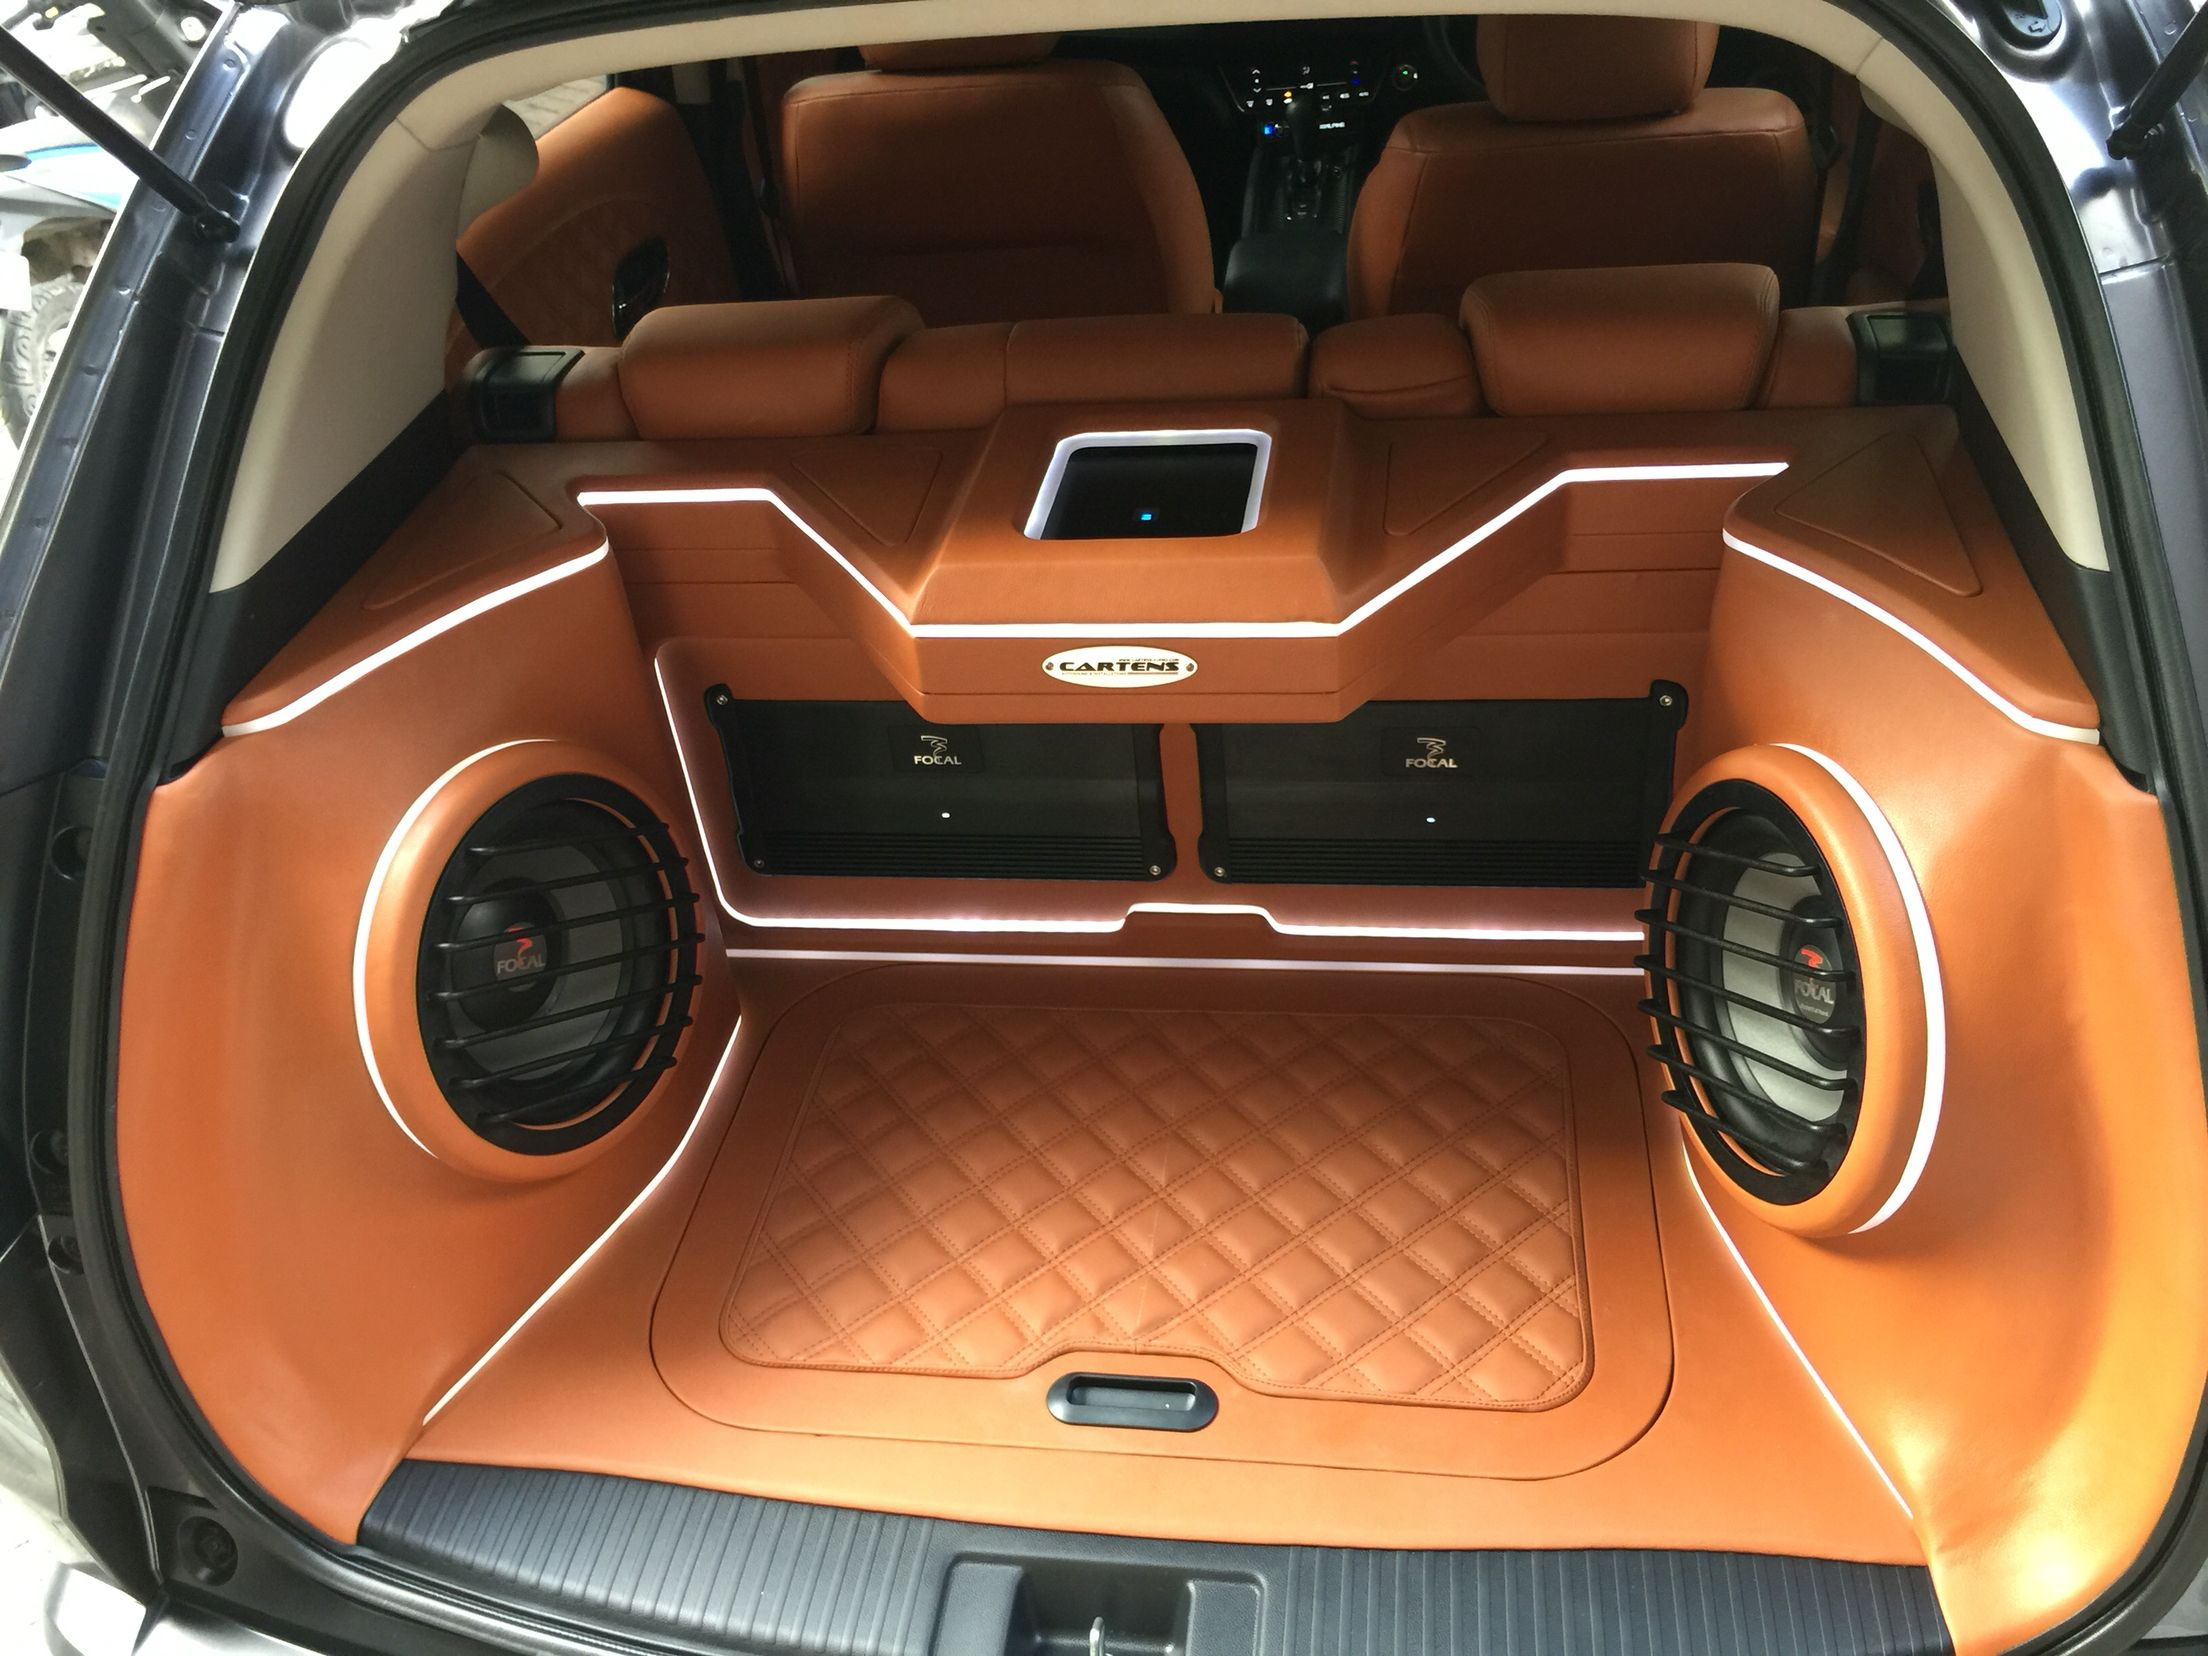 Customized car audio